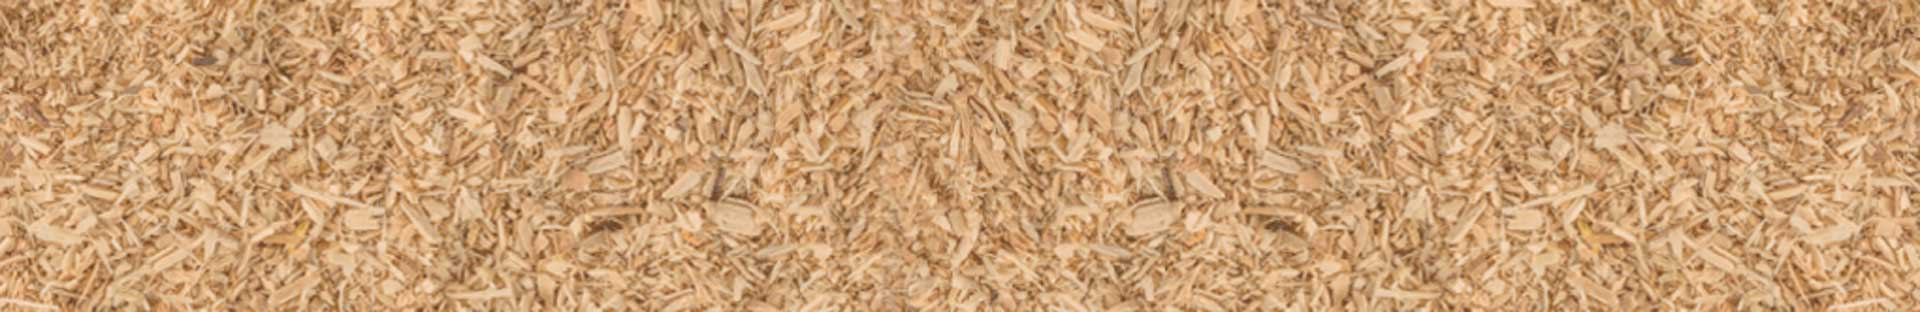 Industrial Applications - All Purpose Sawdust